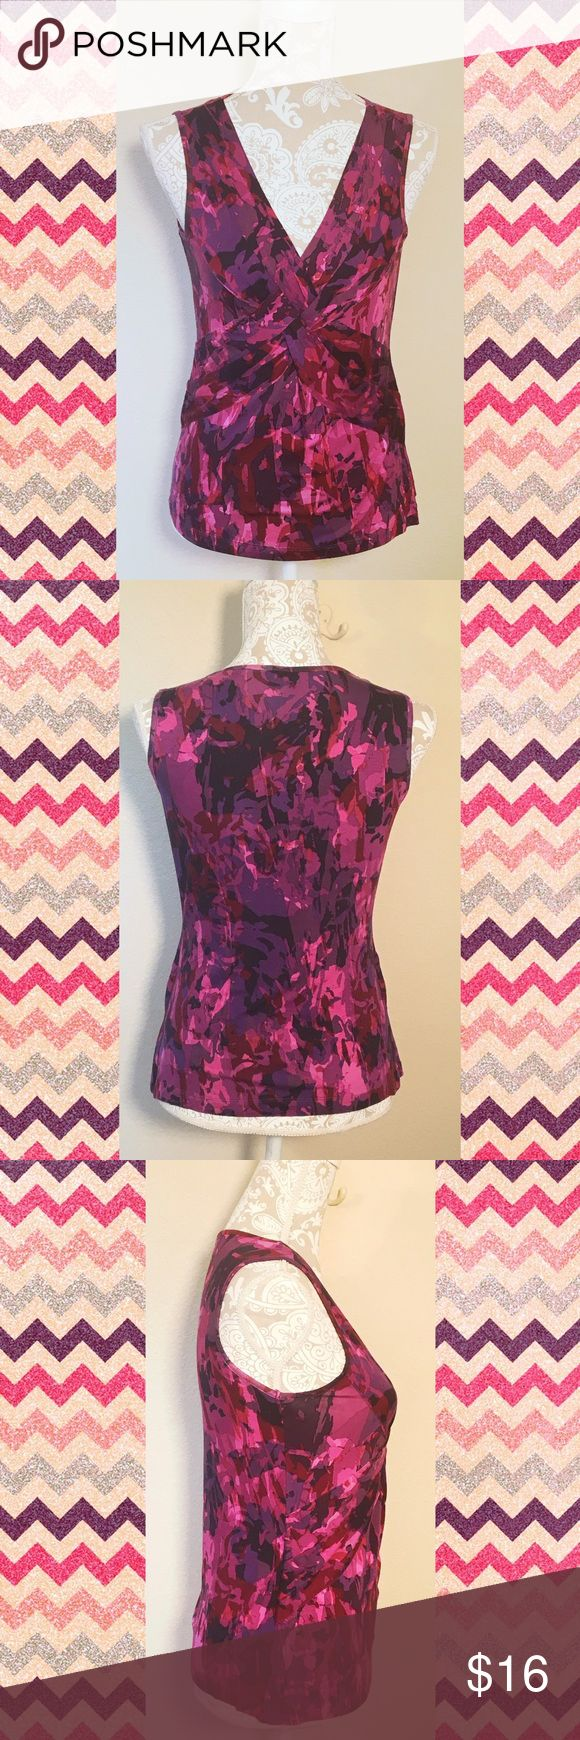 NWT Cable & Gauge knot V neck sleeveless blouse NWT Cable & Gauge V neck sleeveless purple & pink camouflage pattern front knot blouse. Size M. 97% viscose 3% spandex. Soft and stretchy. Brand new, no flaws, smoke free home. #purple #pink #medium #sleeveless #blouse #tank #vneck #stretch #cable ❌no trades❌ Cable & Gauge Tops Blouses